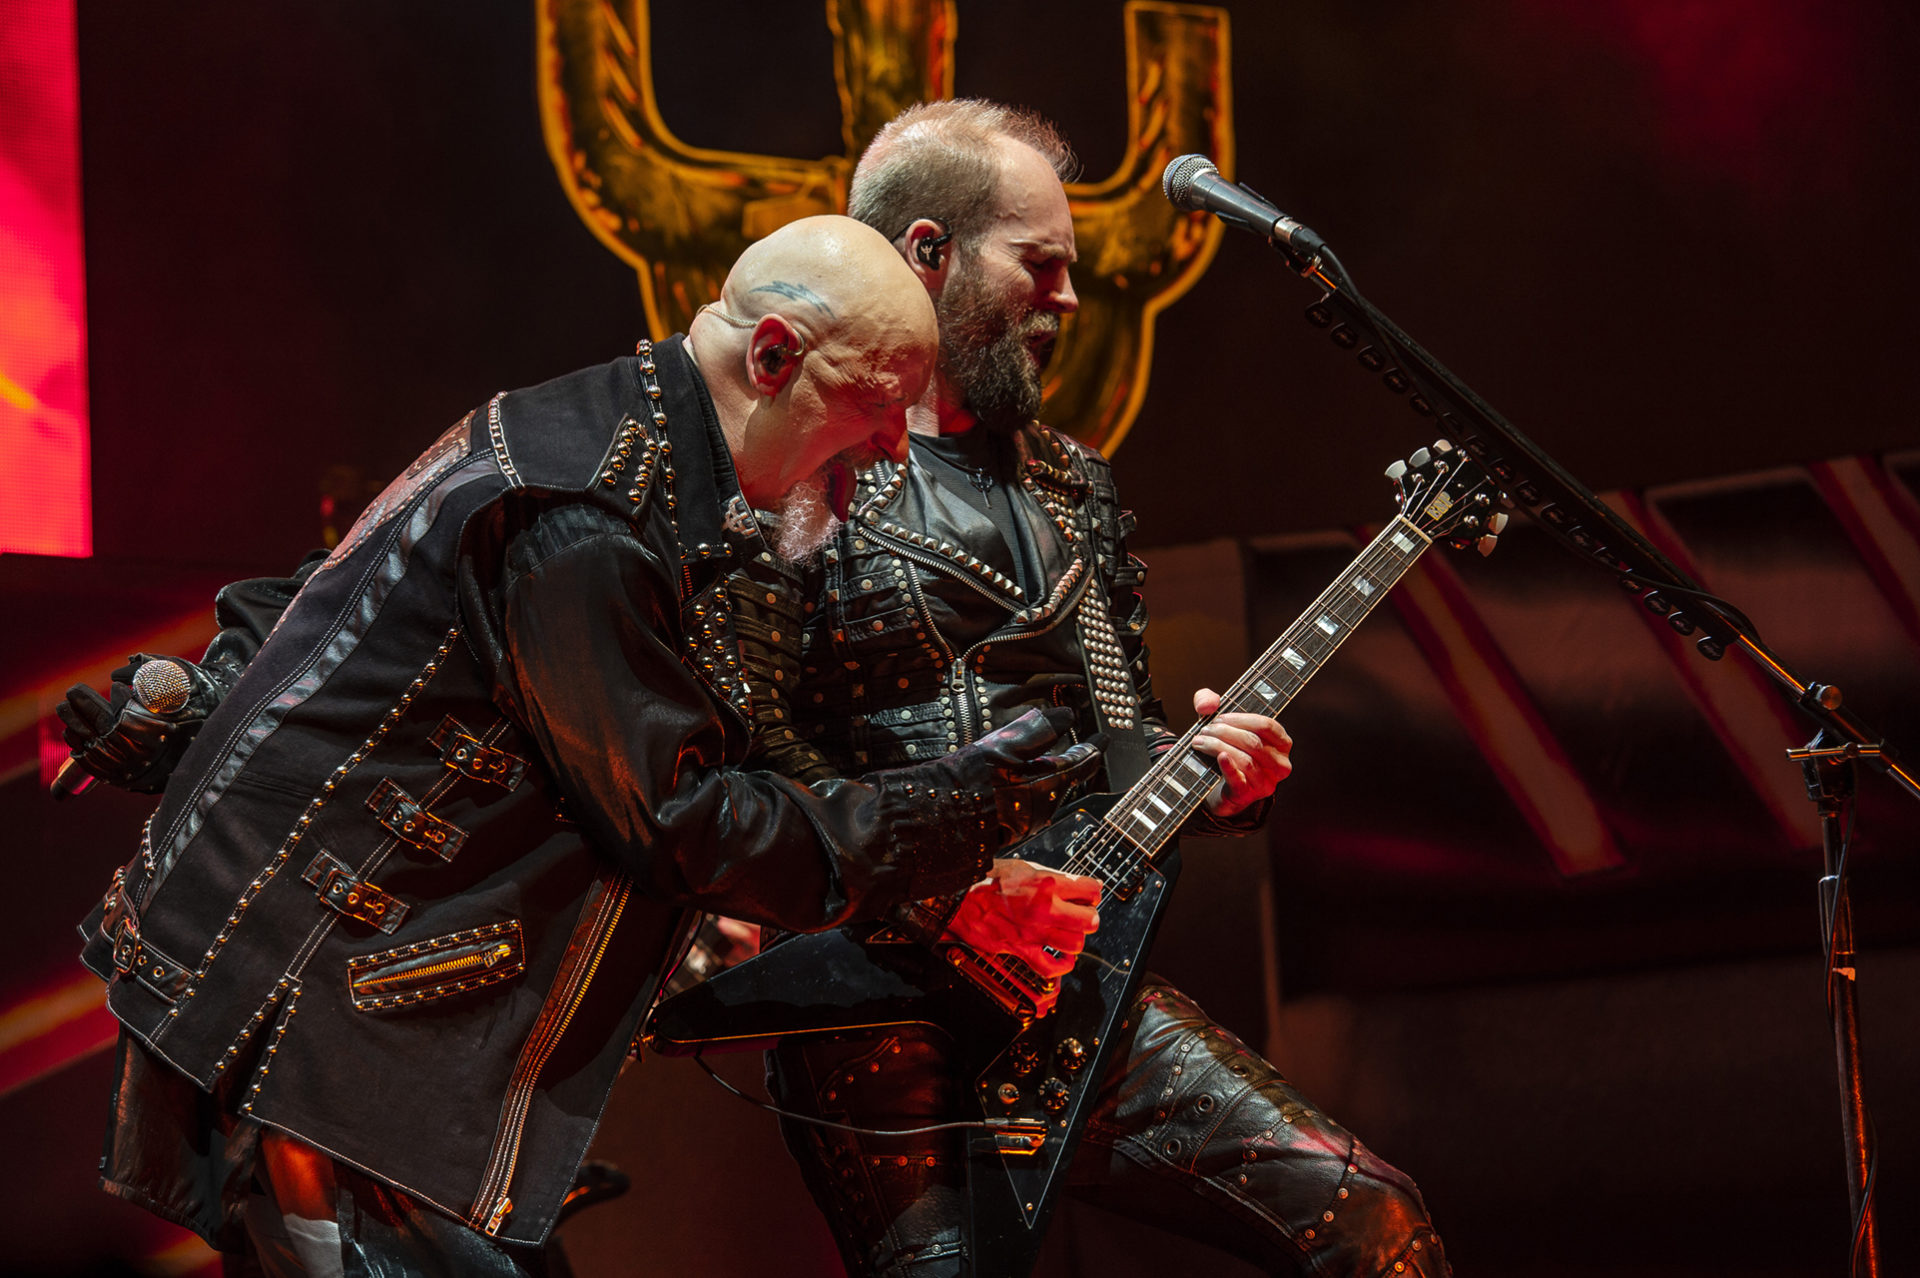 Judas_Priest_3